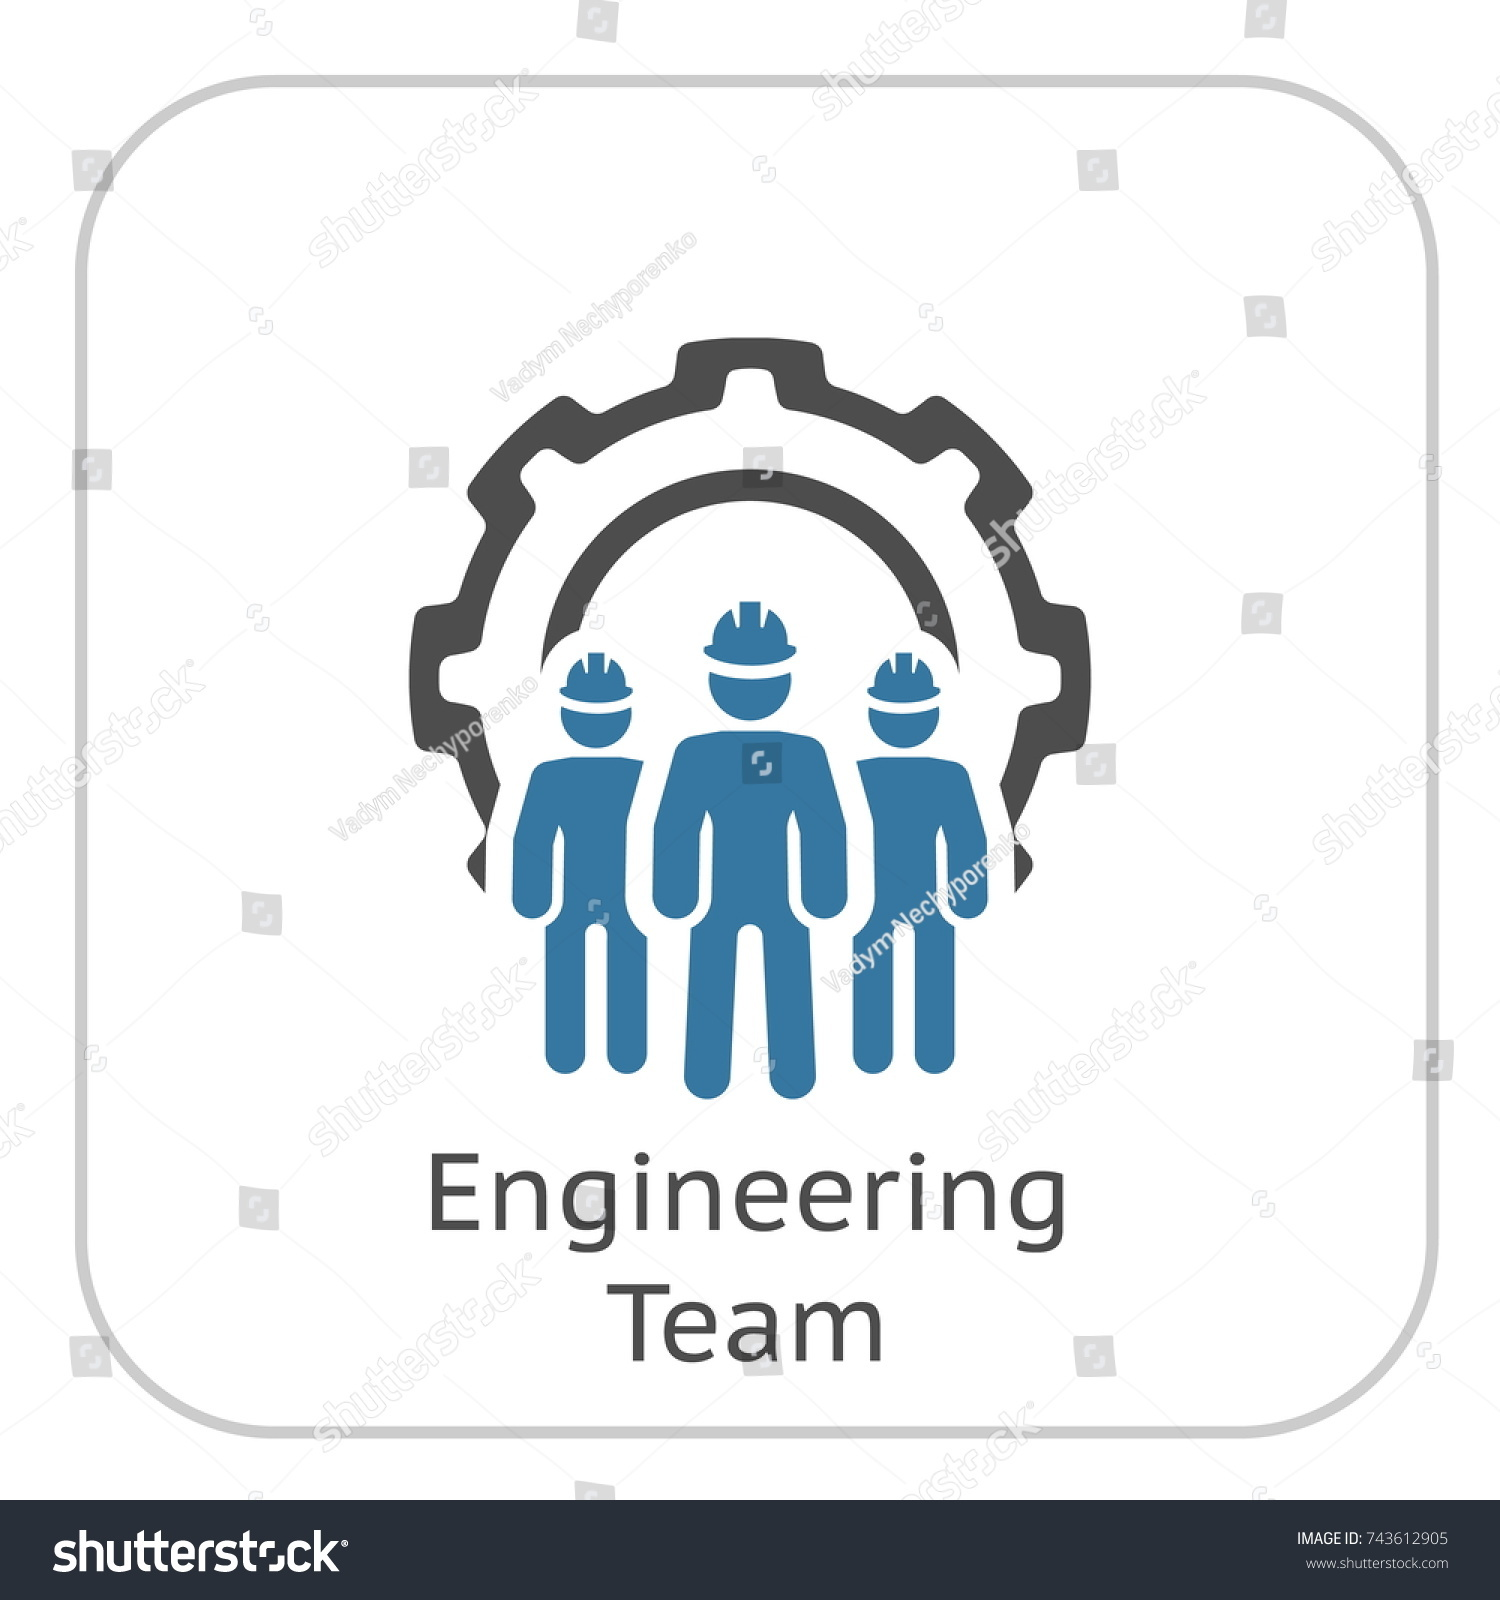 Engineering Team Icon Three Men Cog Stock Vector (Royalty Free ...